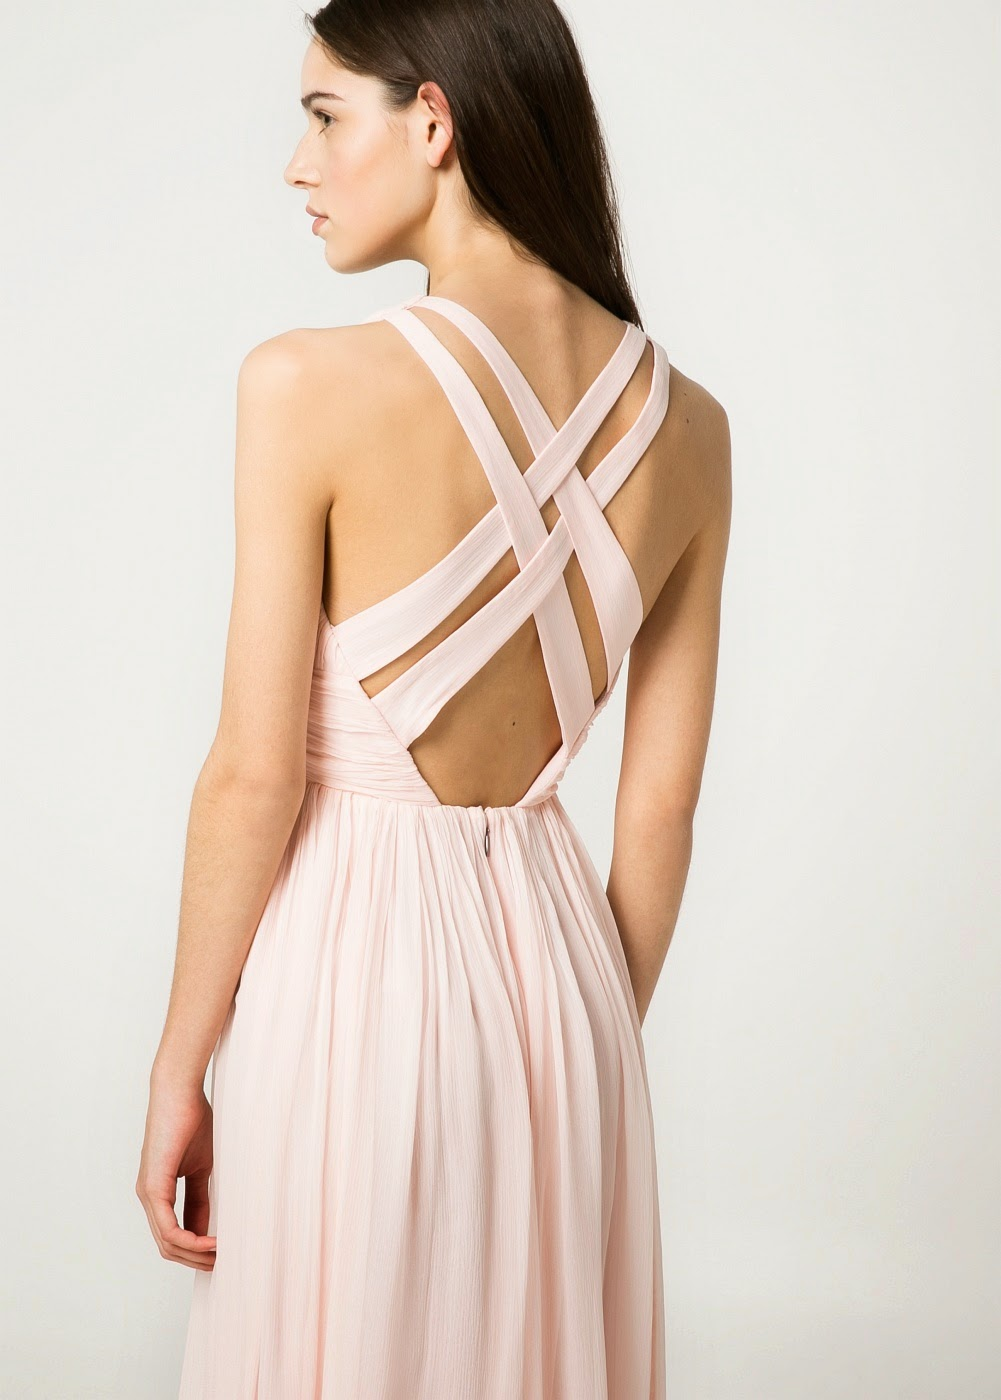 Mariage champetre robe invitee - Robe champetre pour mariage ...